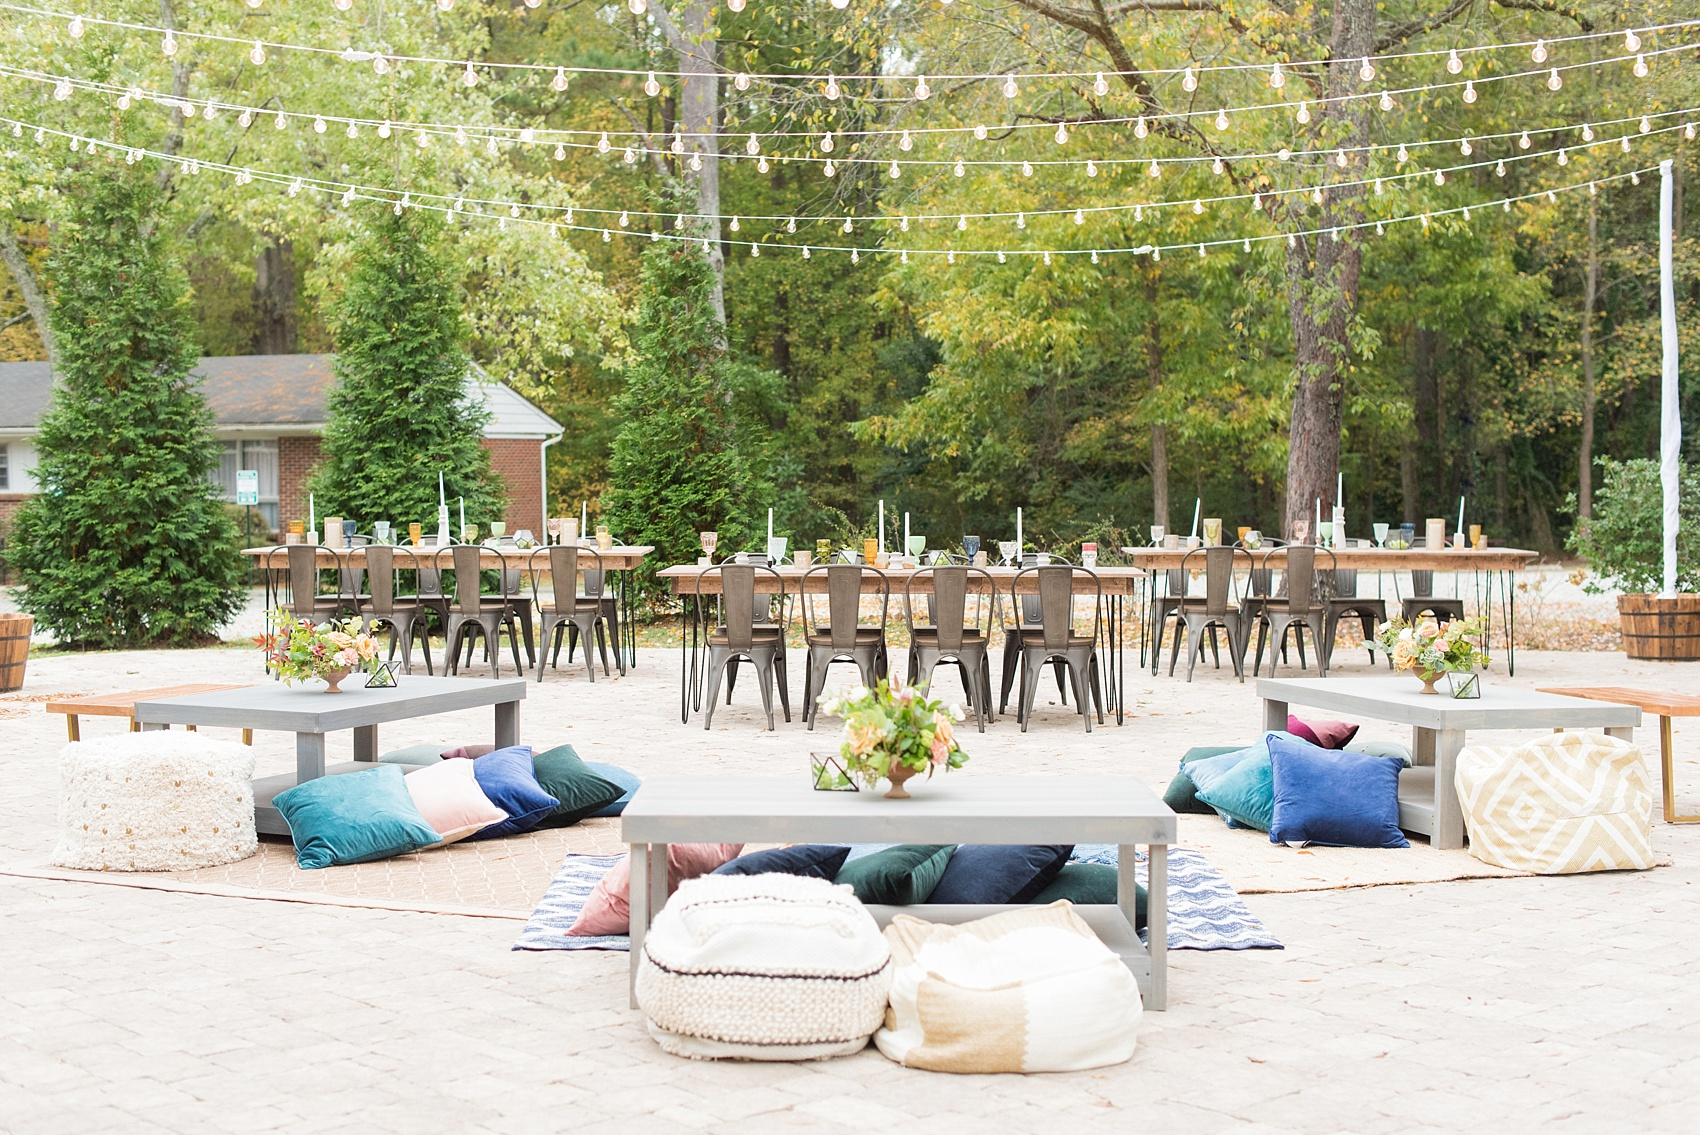 Mikkel Paige Photography photos from a wedding at Leslie-Alford Mims House in North Carolina. Picture of the outdoor reception setup with farm tables, metal chairs, rugs and pillow seating and market lights.